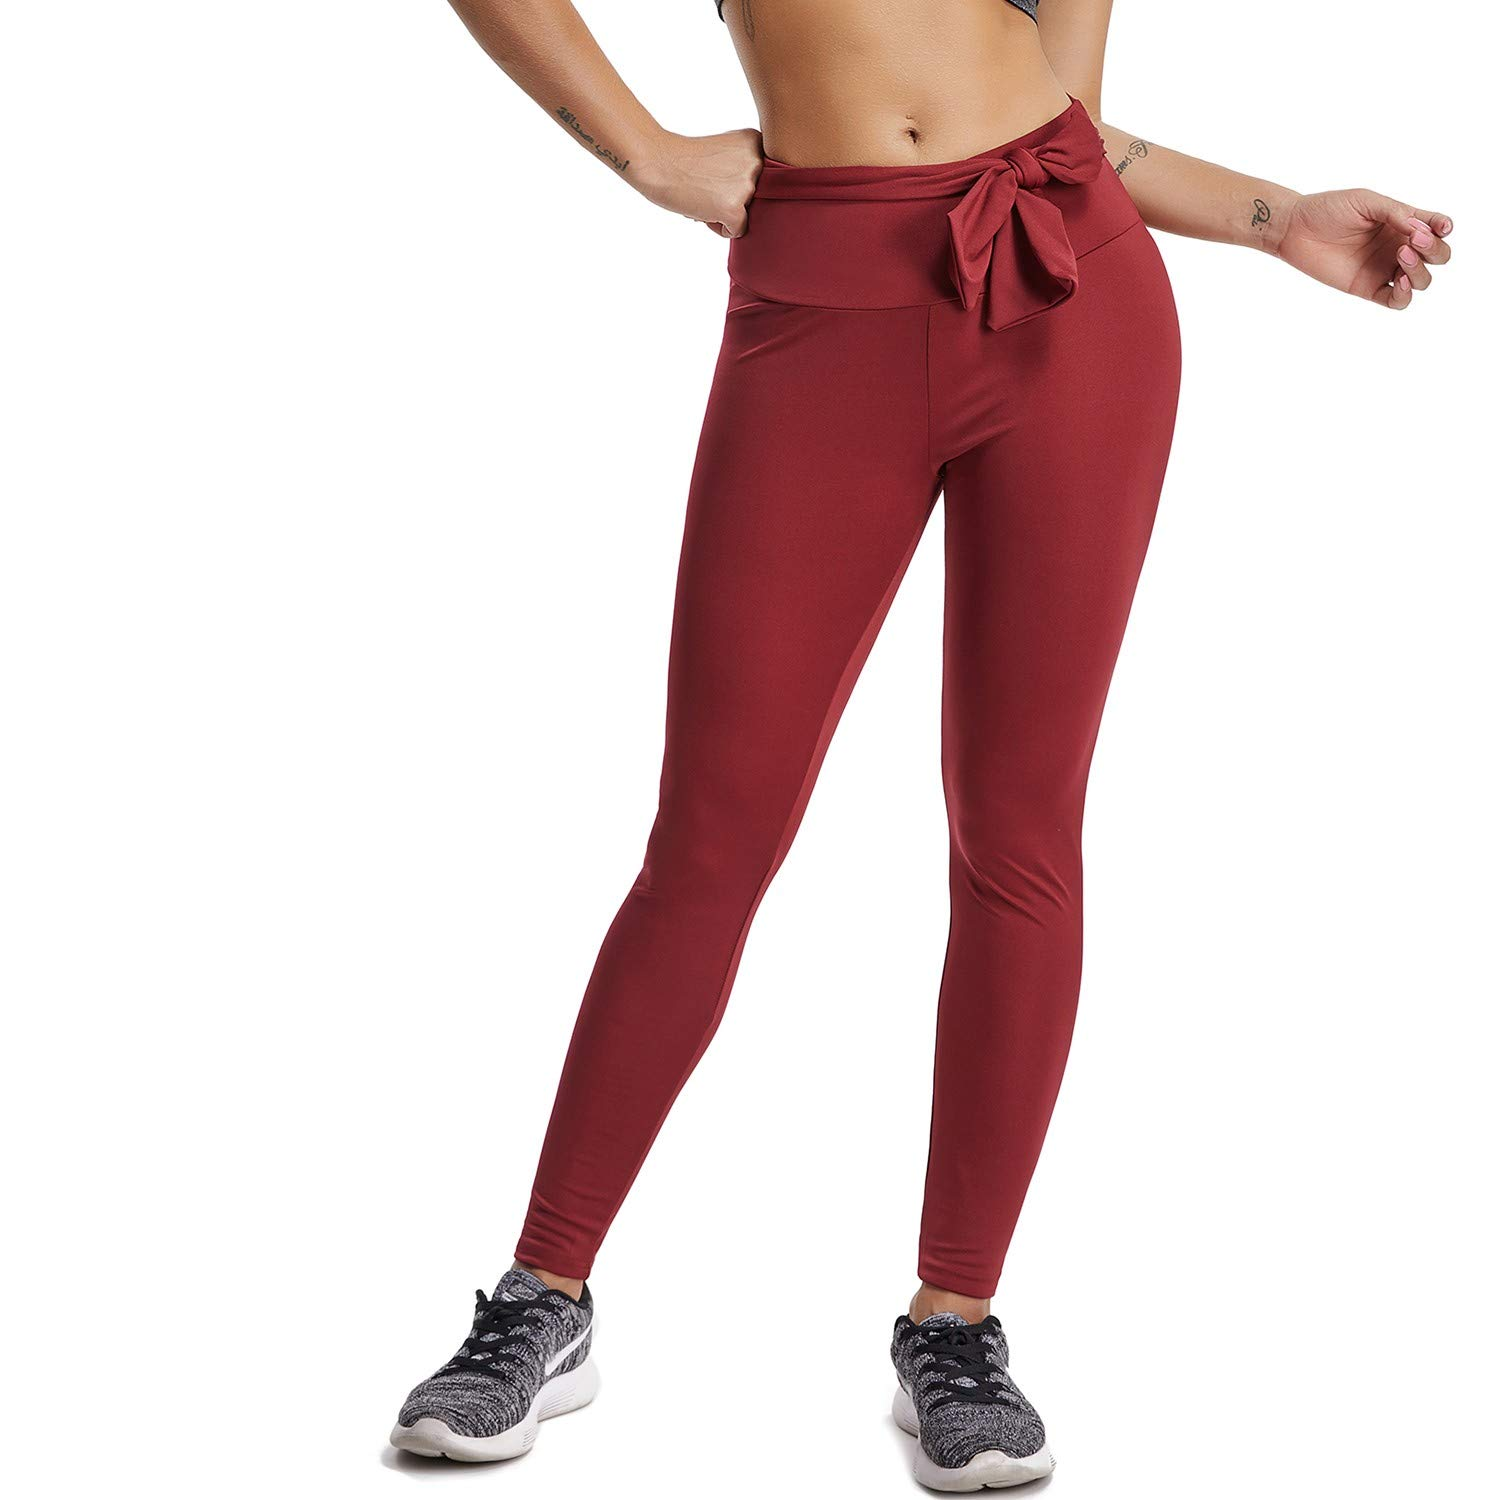 CFR Fitness Leggings Womens Ruched Butt High Waist Back Tie Workout Yoga Tights